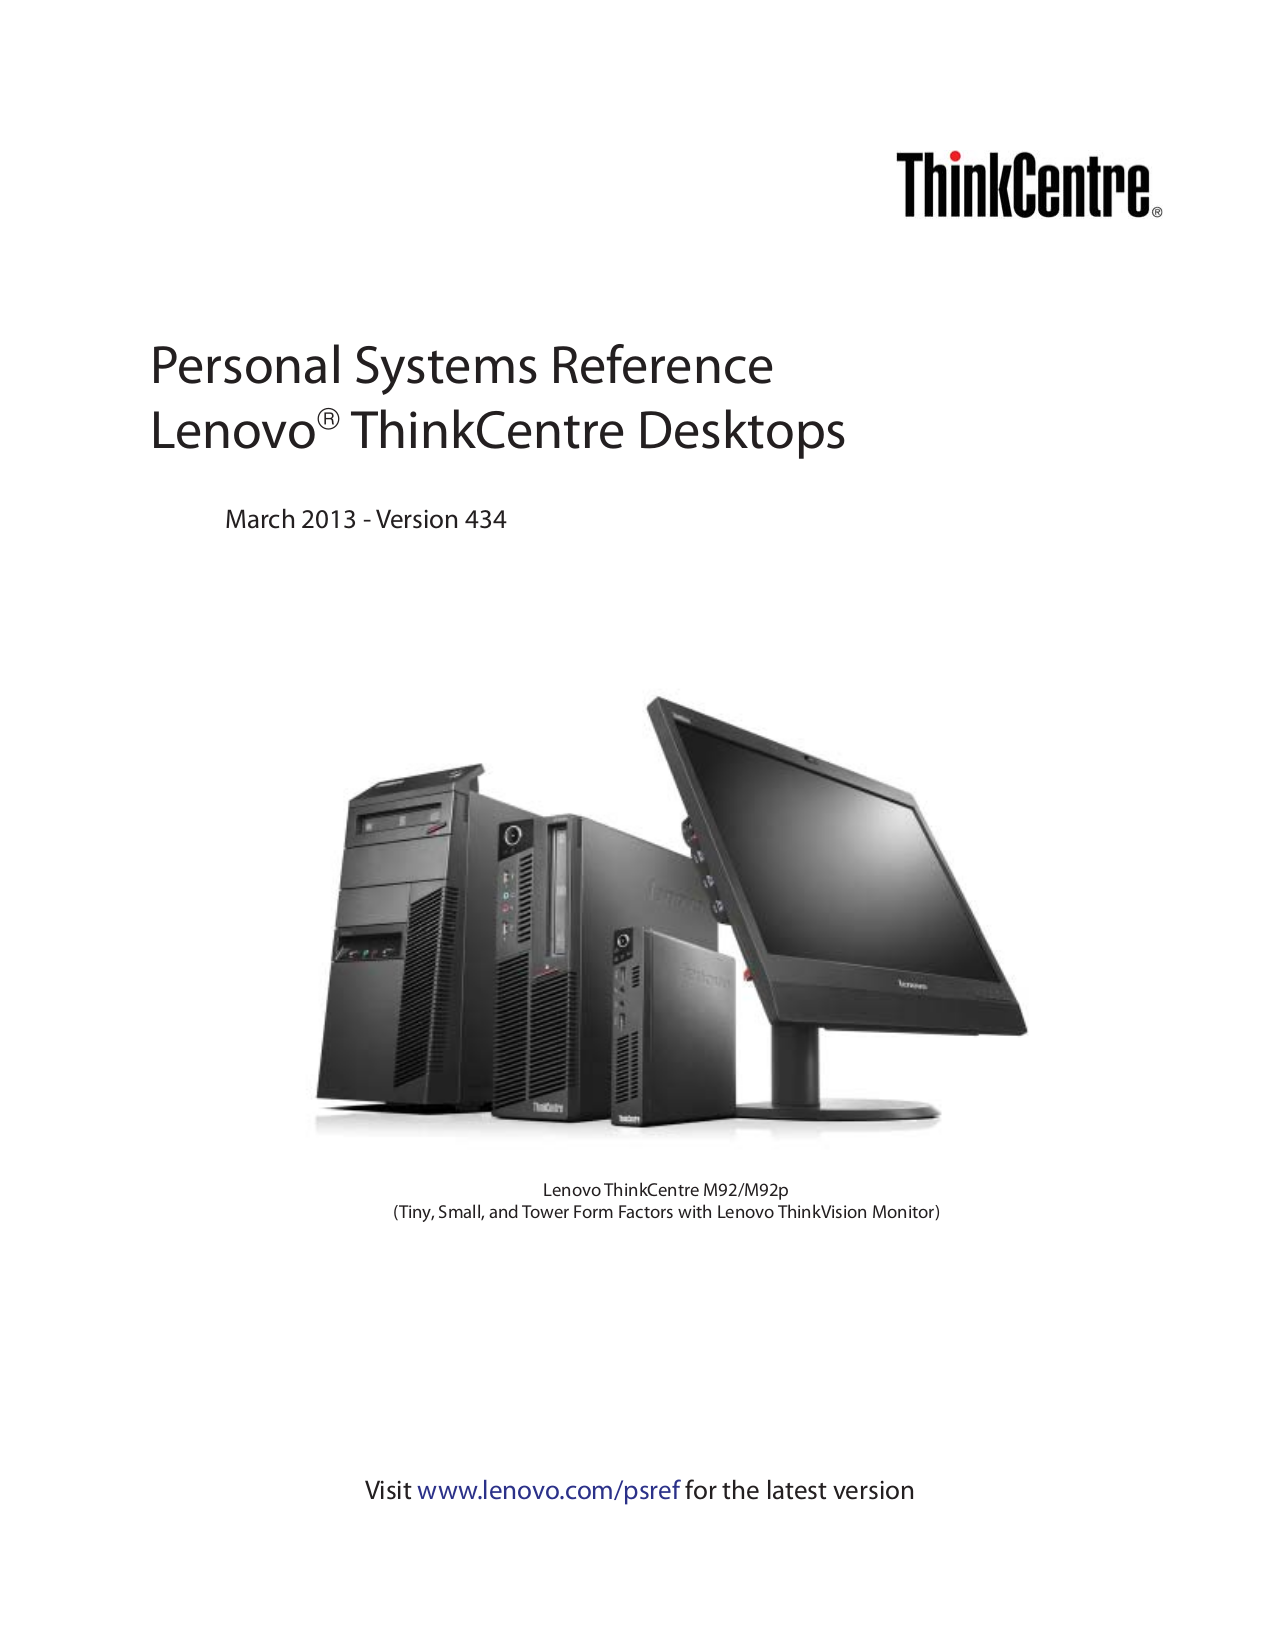 pdf for Lenovo Desktop ThinkCentre M77 1982 manual